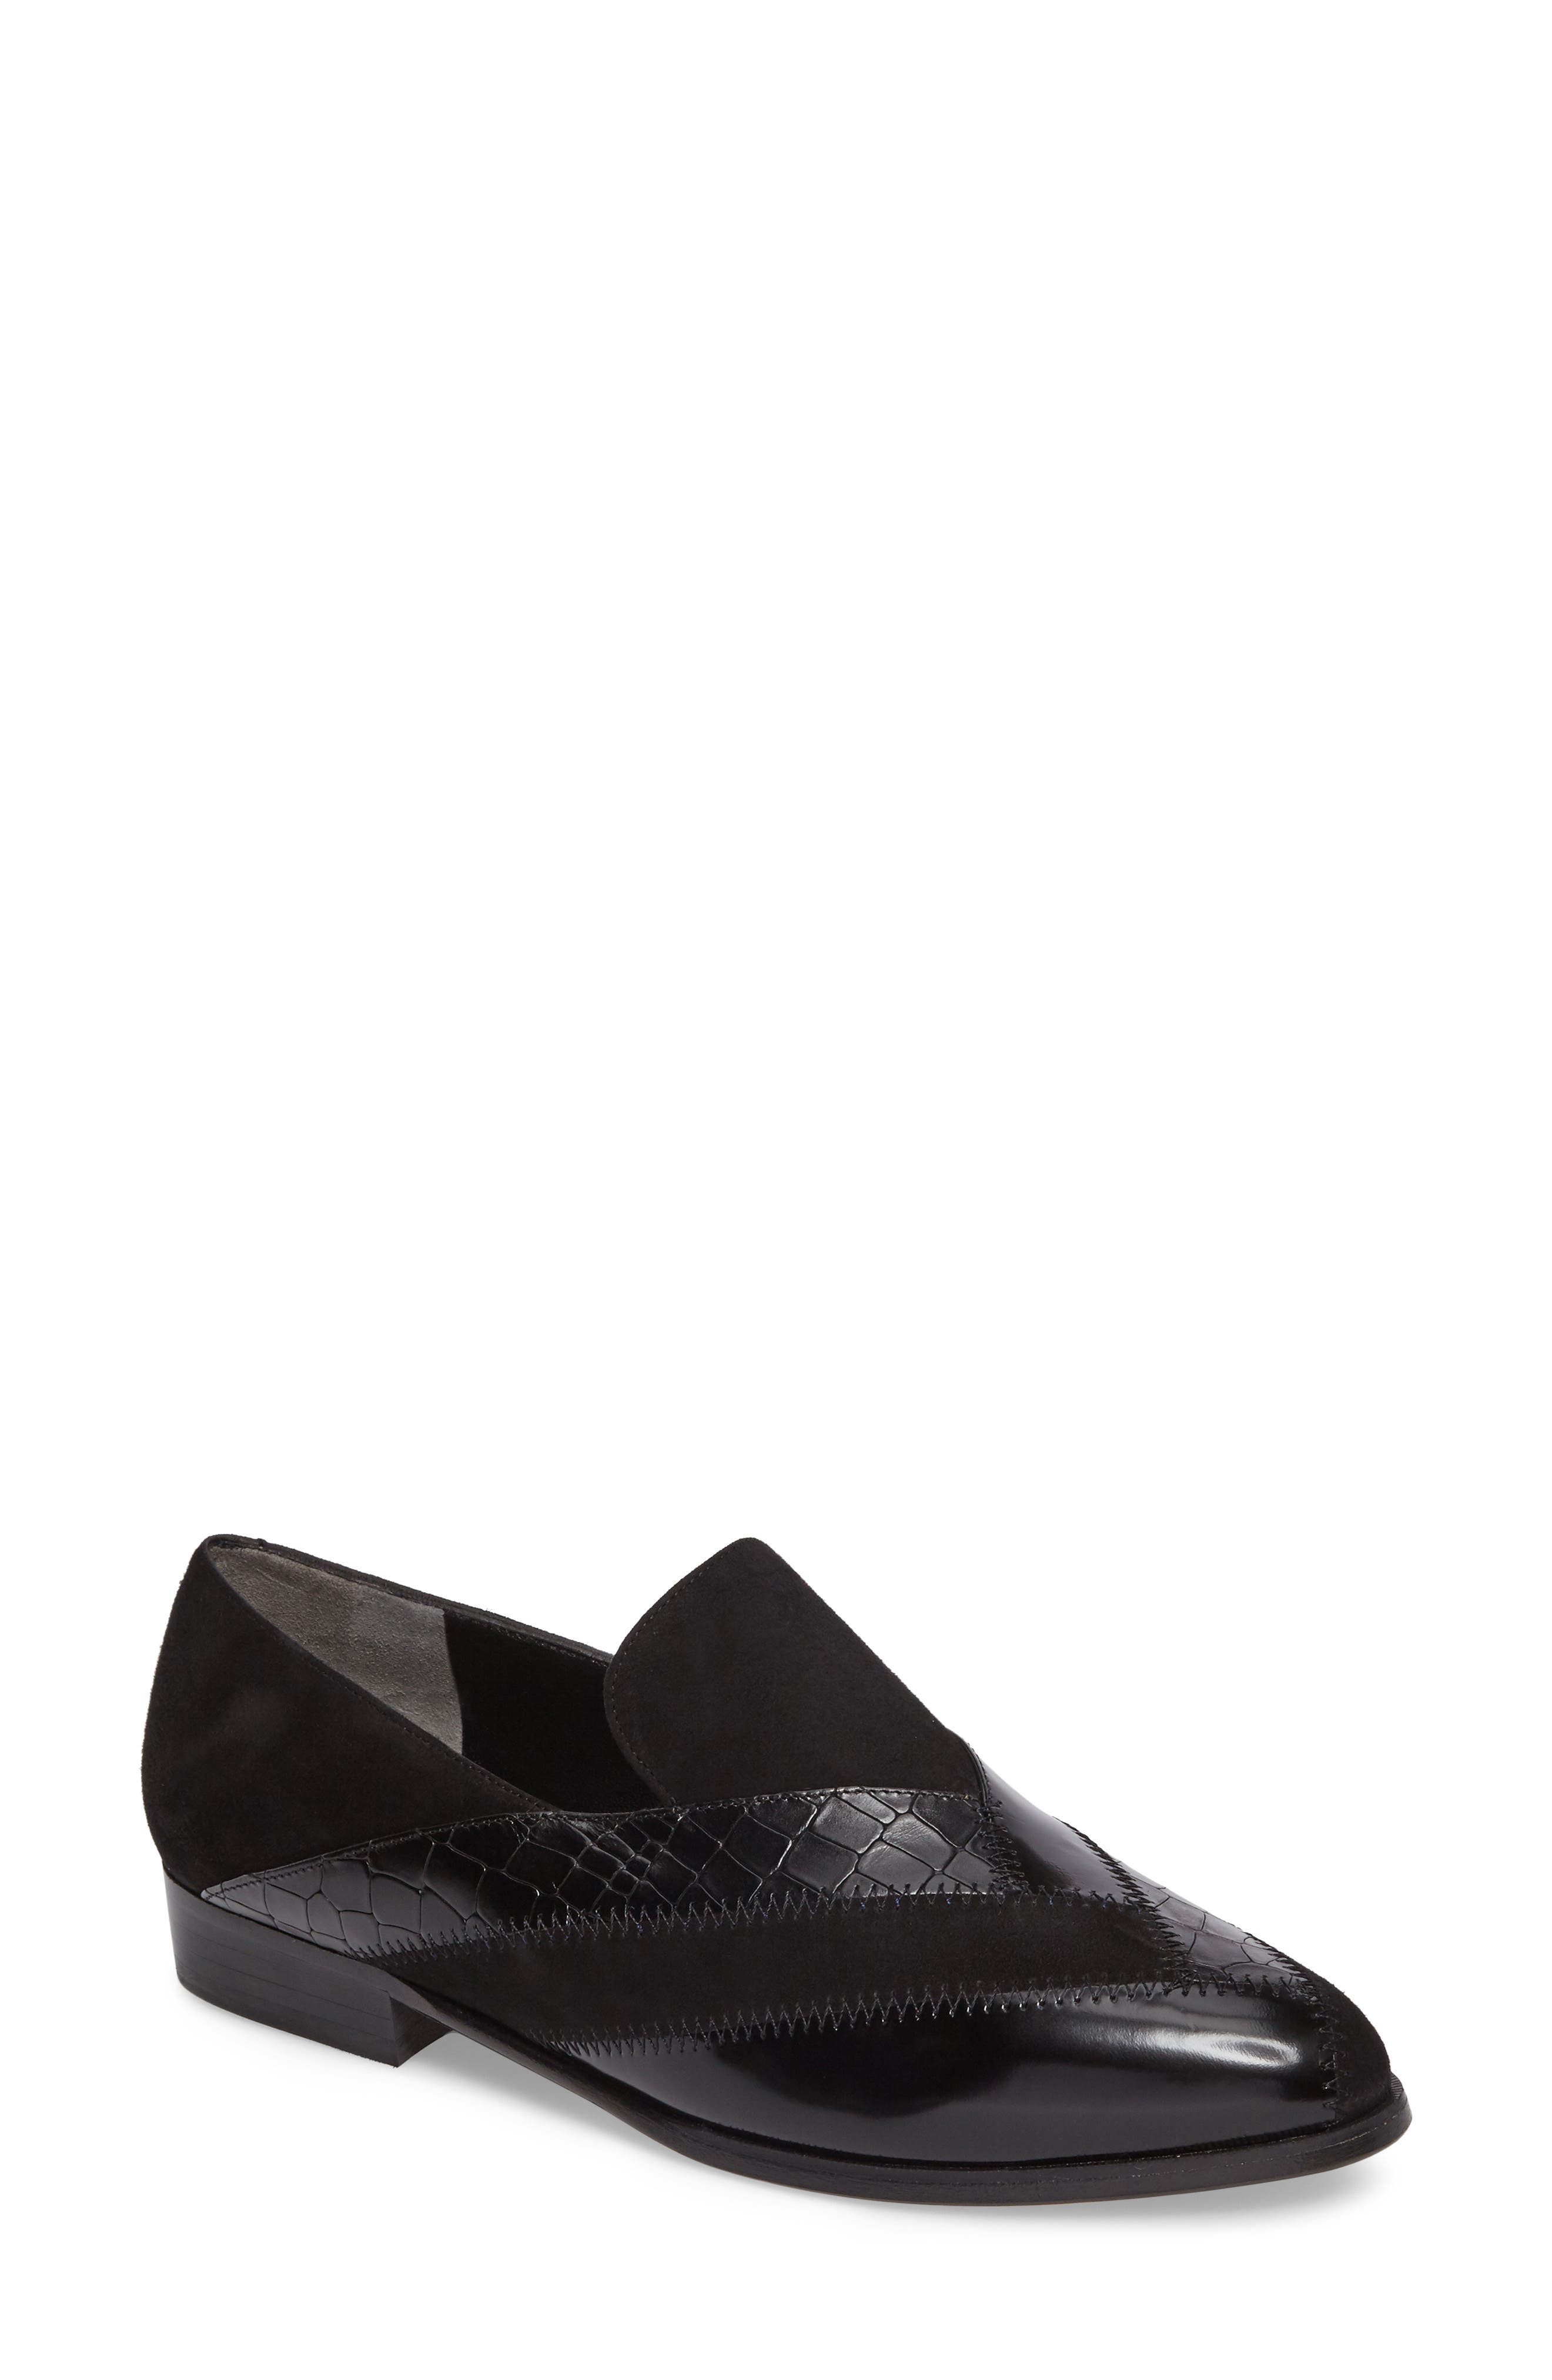 Main Image - Robert Clergerie Atum Loafer (Women)